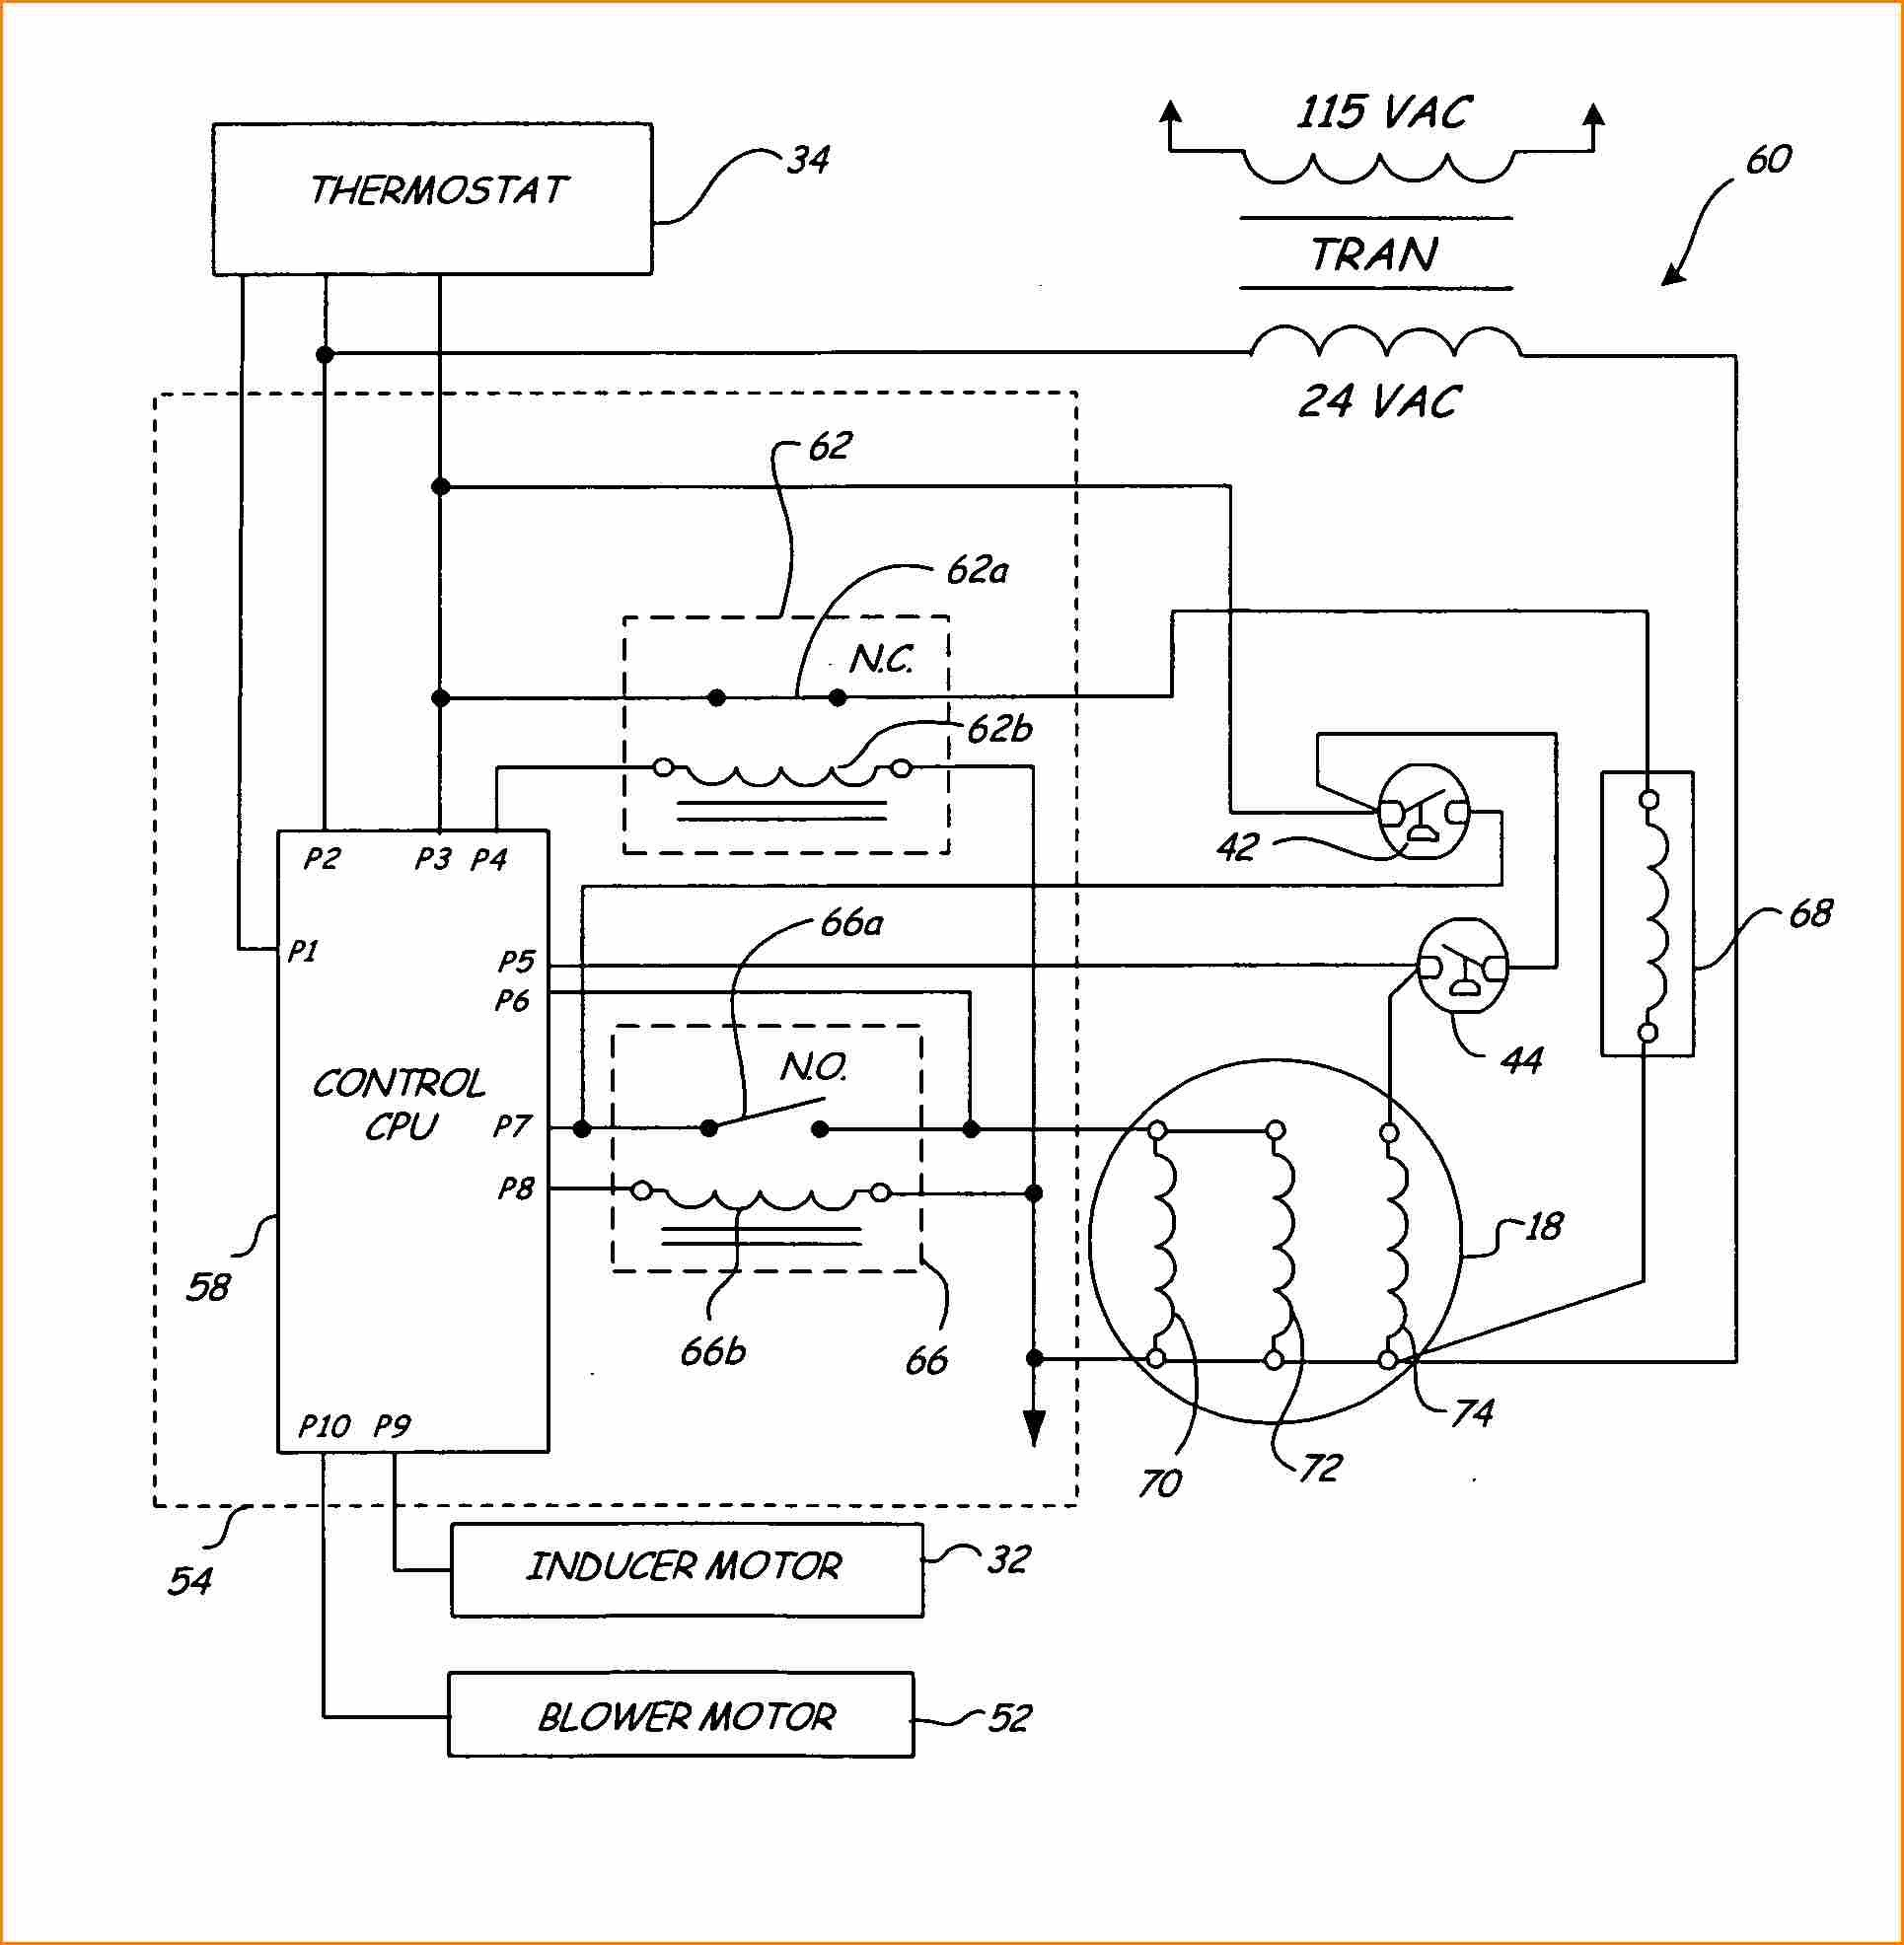 Gas Heater Wiring Diagram Besides Furnace Thermostat Wiring Diagram